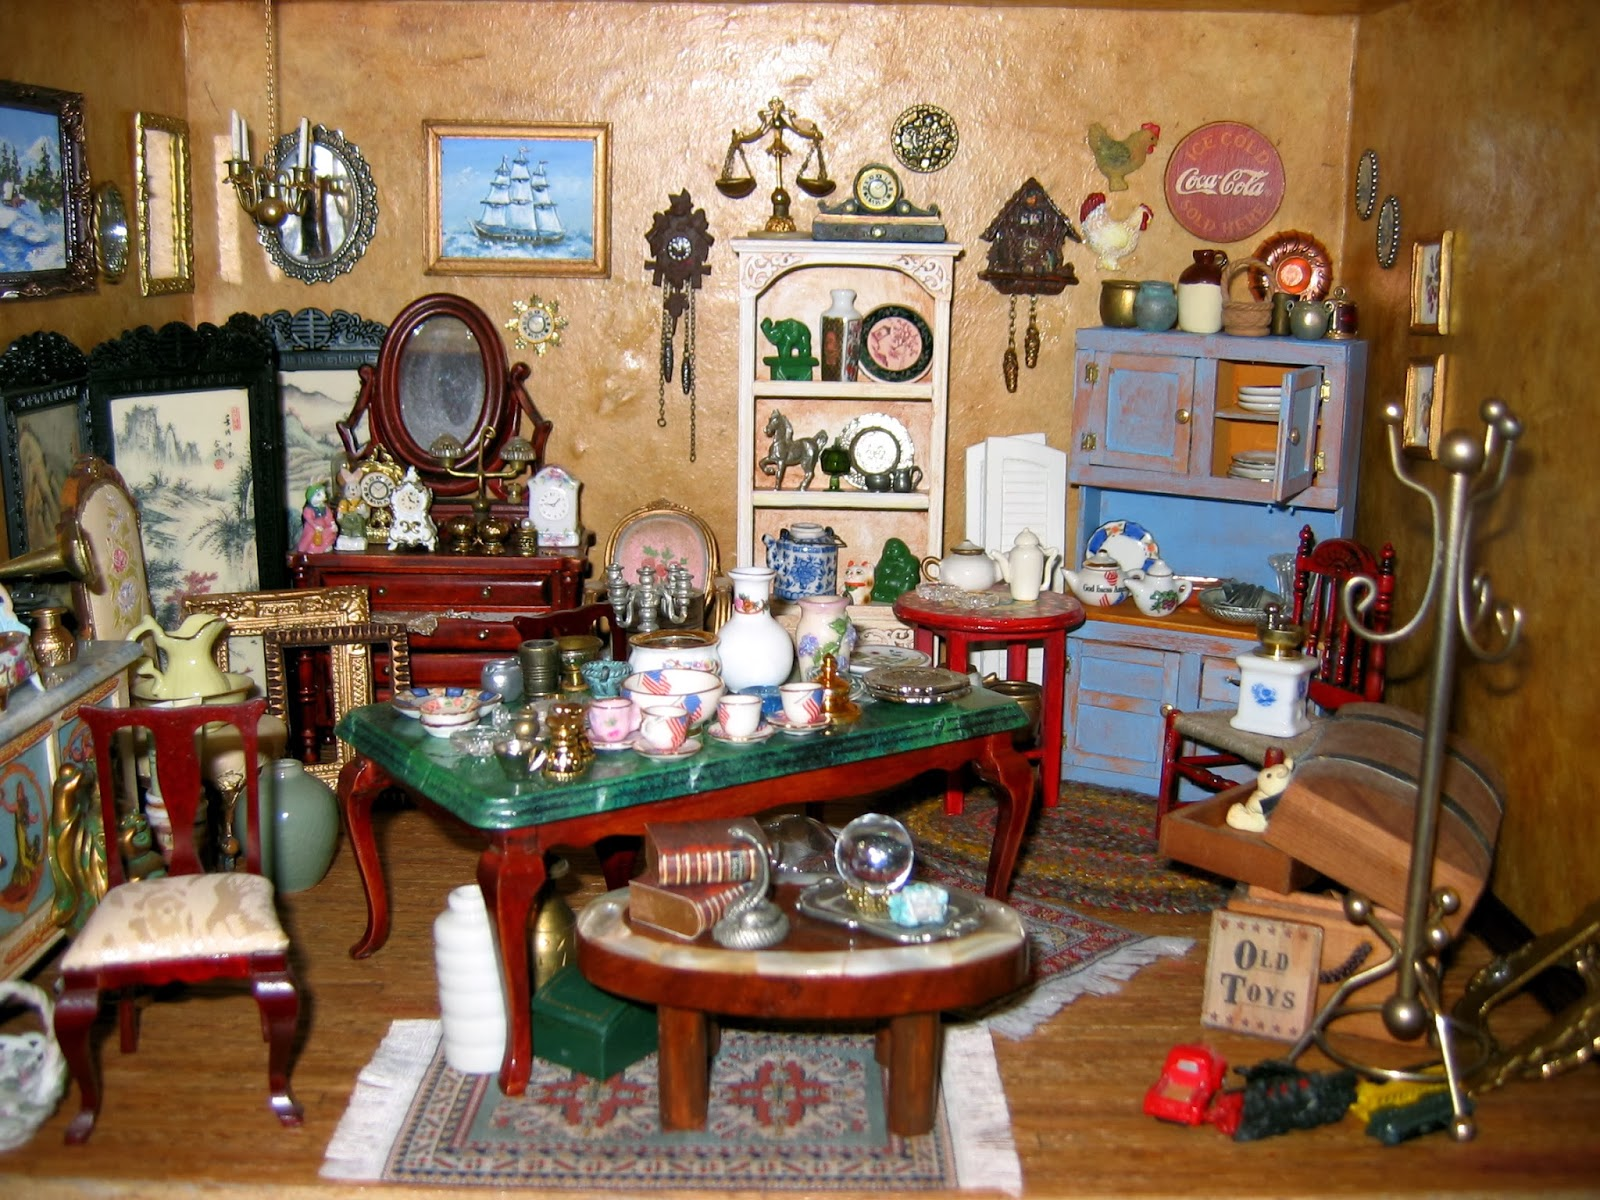 miniature antuque shop